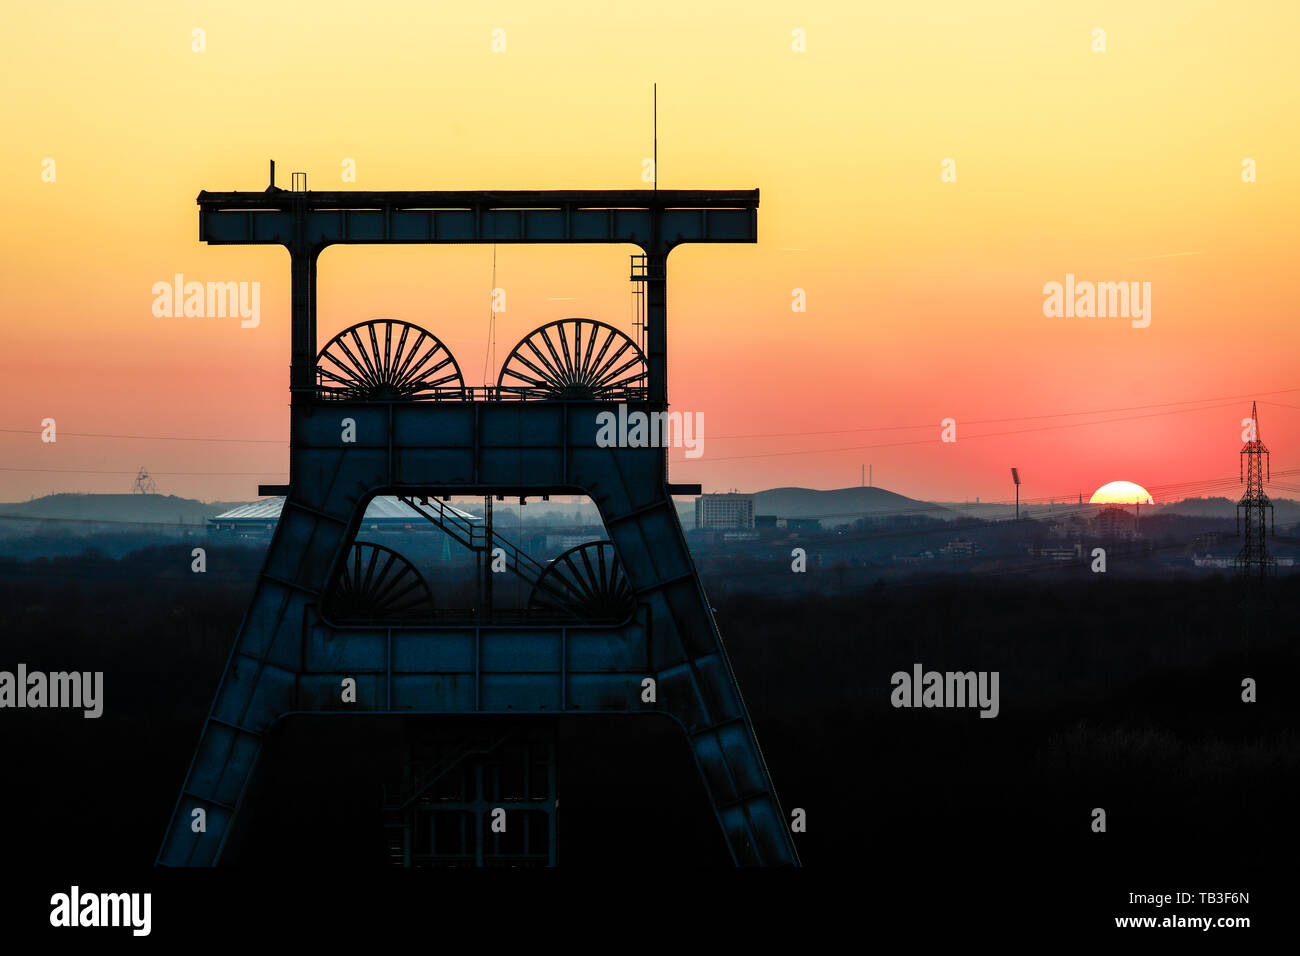 Conveyor Scaffold Stock Photos & Conveyor Scaffold Stock Images - Alamy